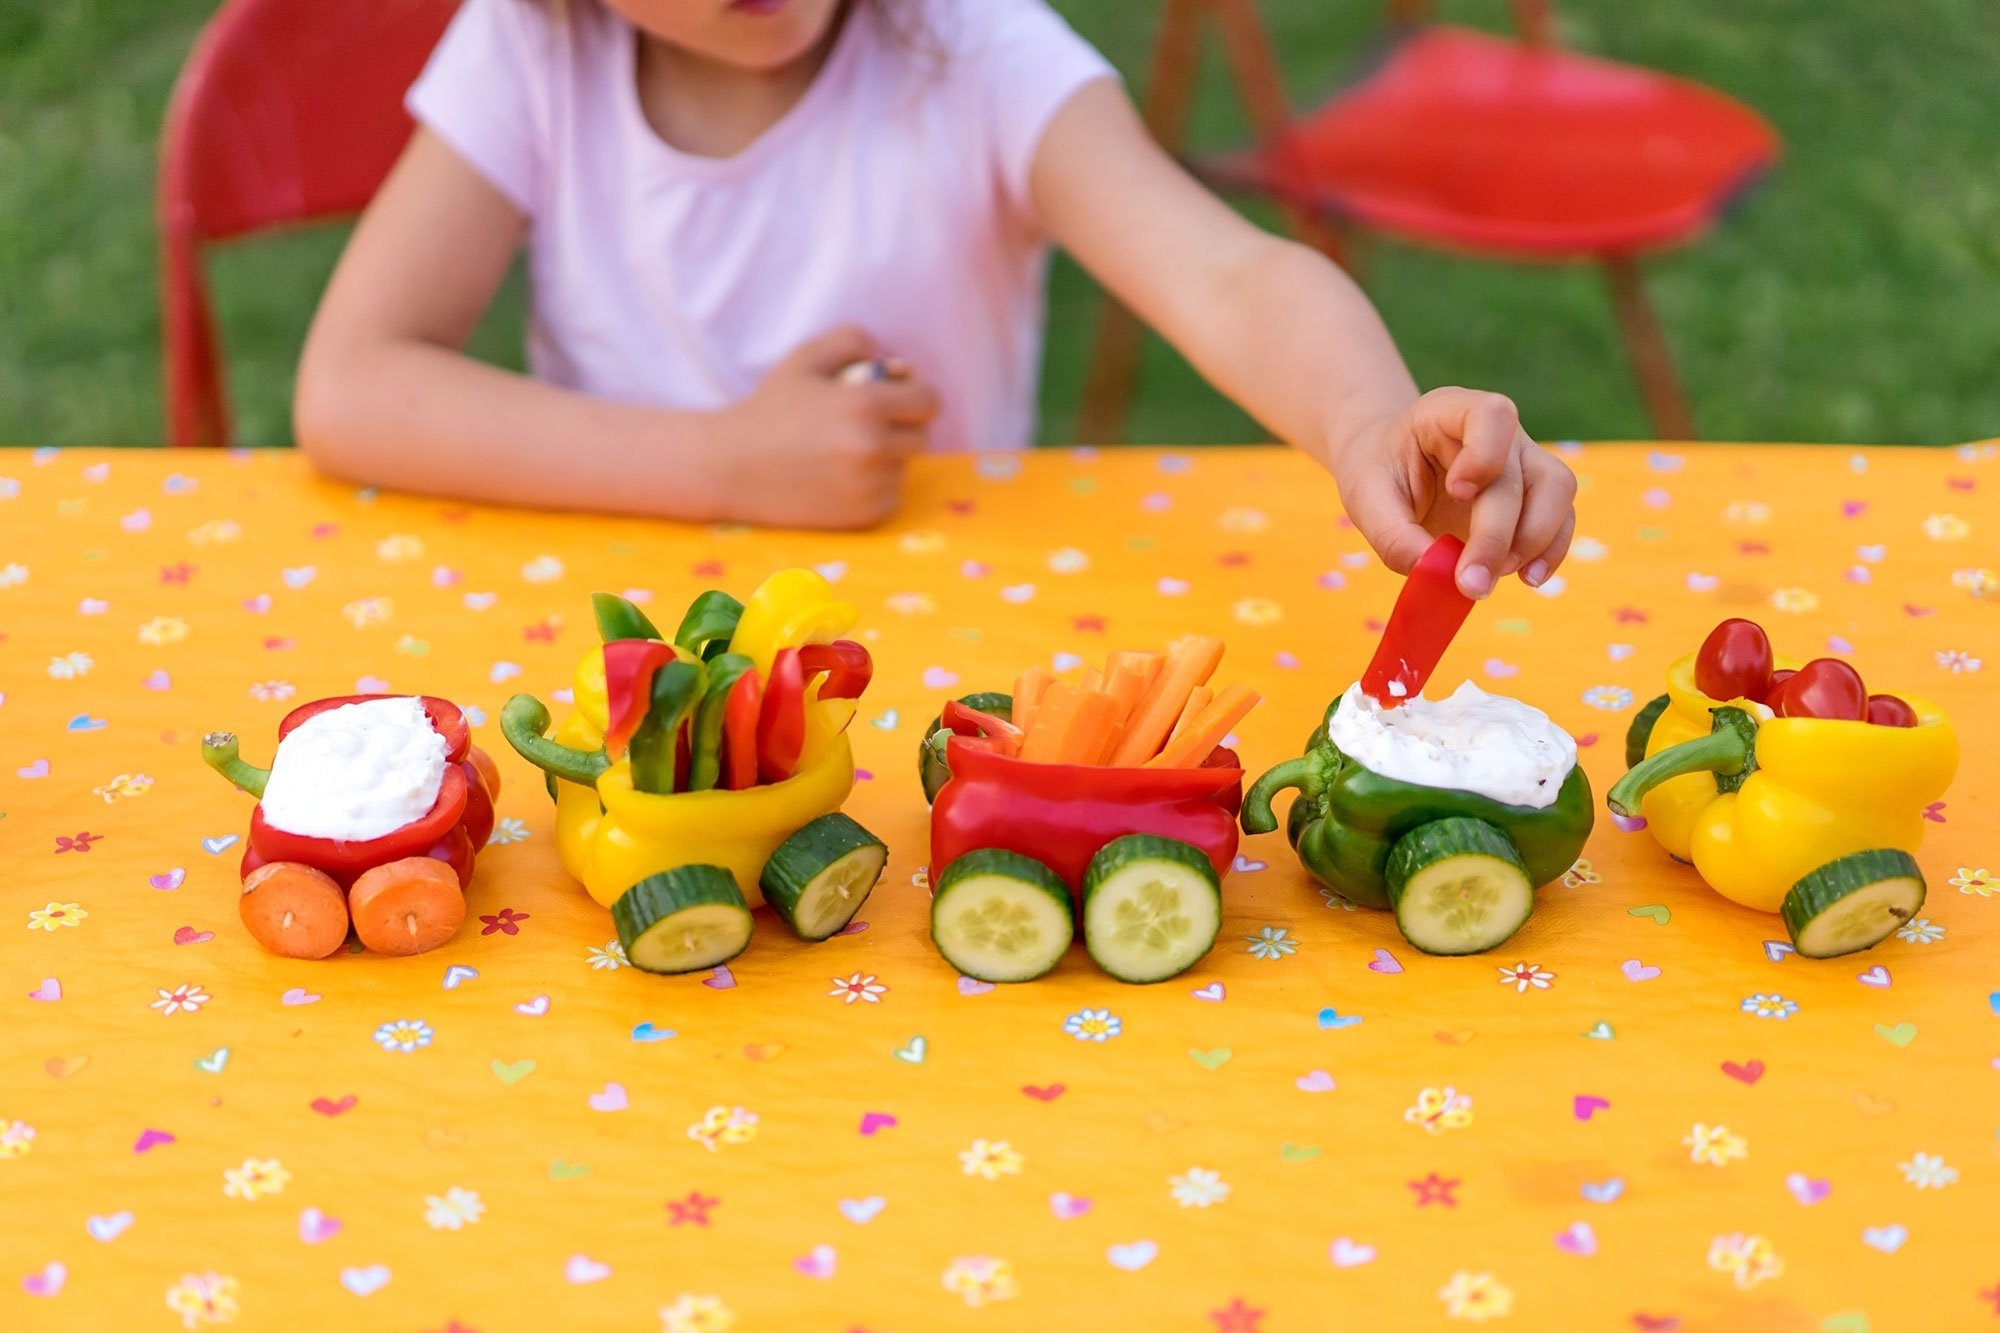 10 Beautiful Party Food Ideas For Kids healthy party food ideas for kids that curb the sugar rush eatingwell 2020